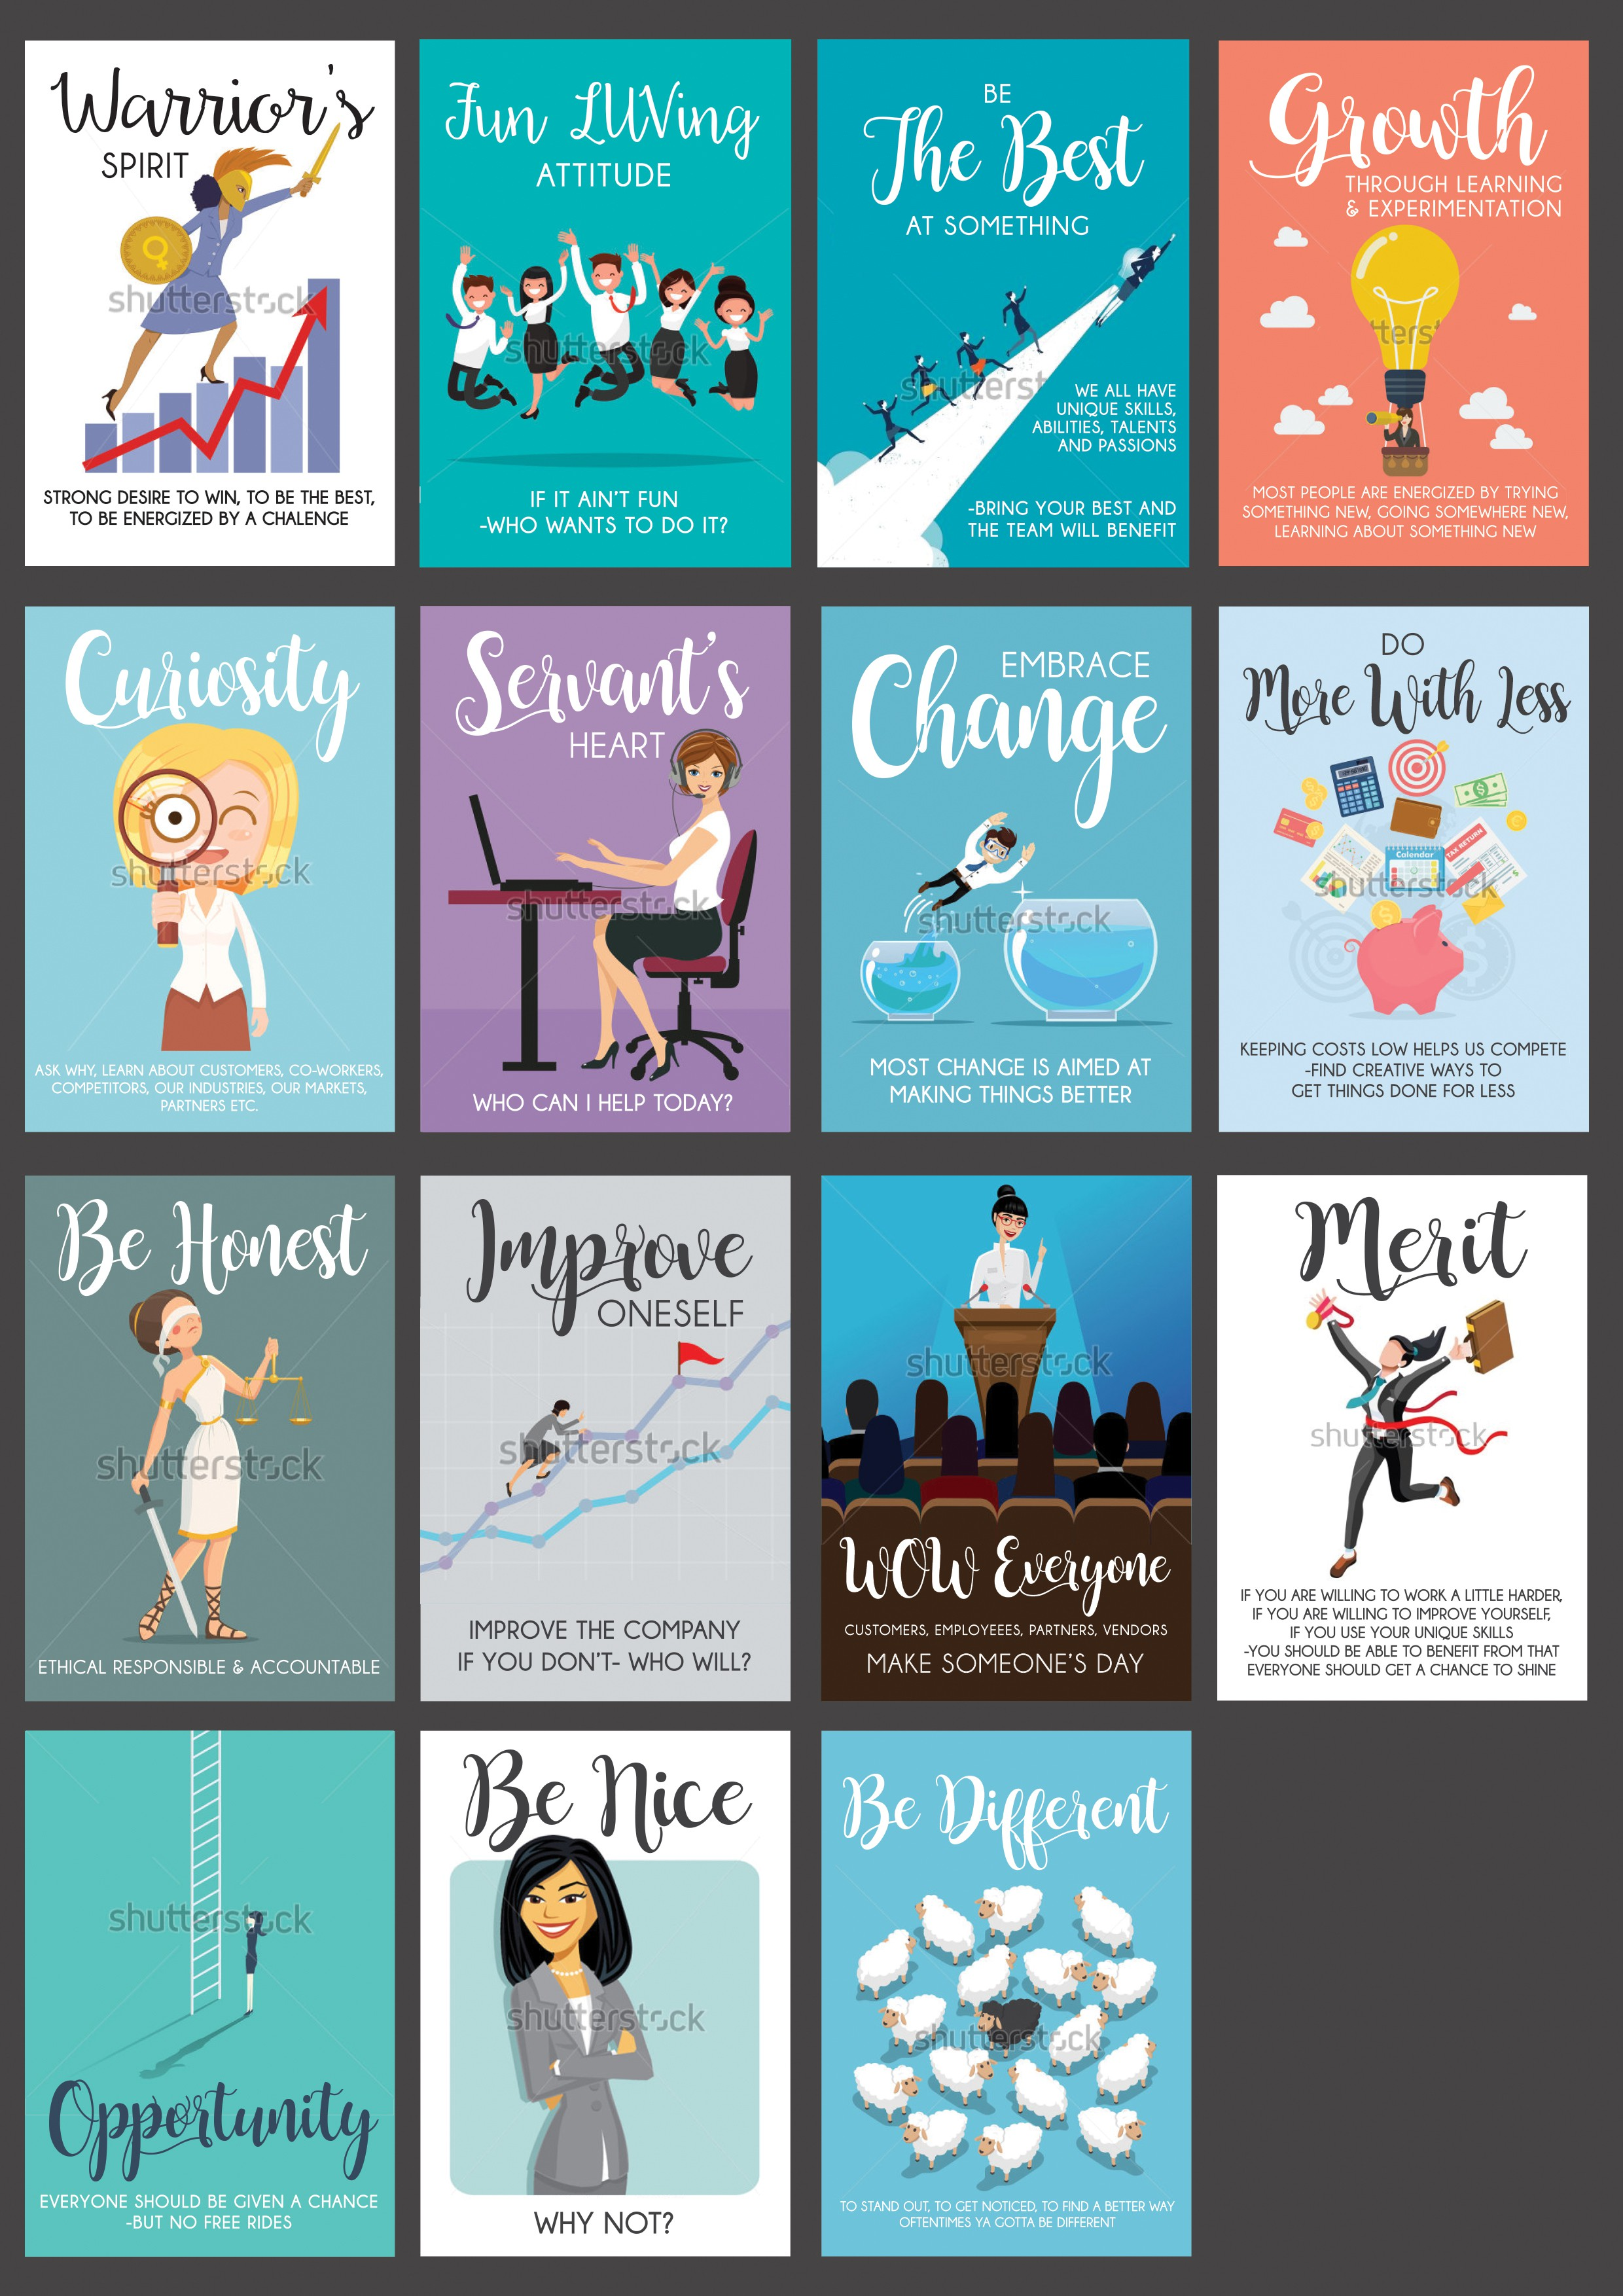 Turn our List of Company Values into cool graphics we can display around our office